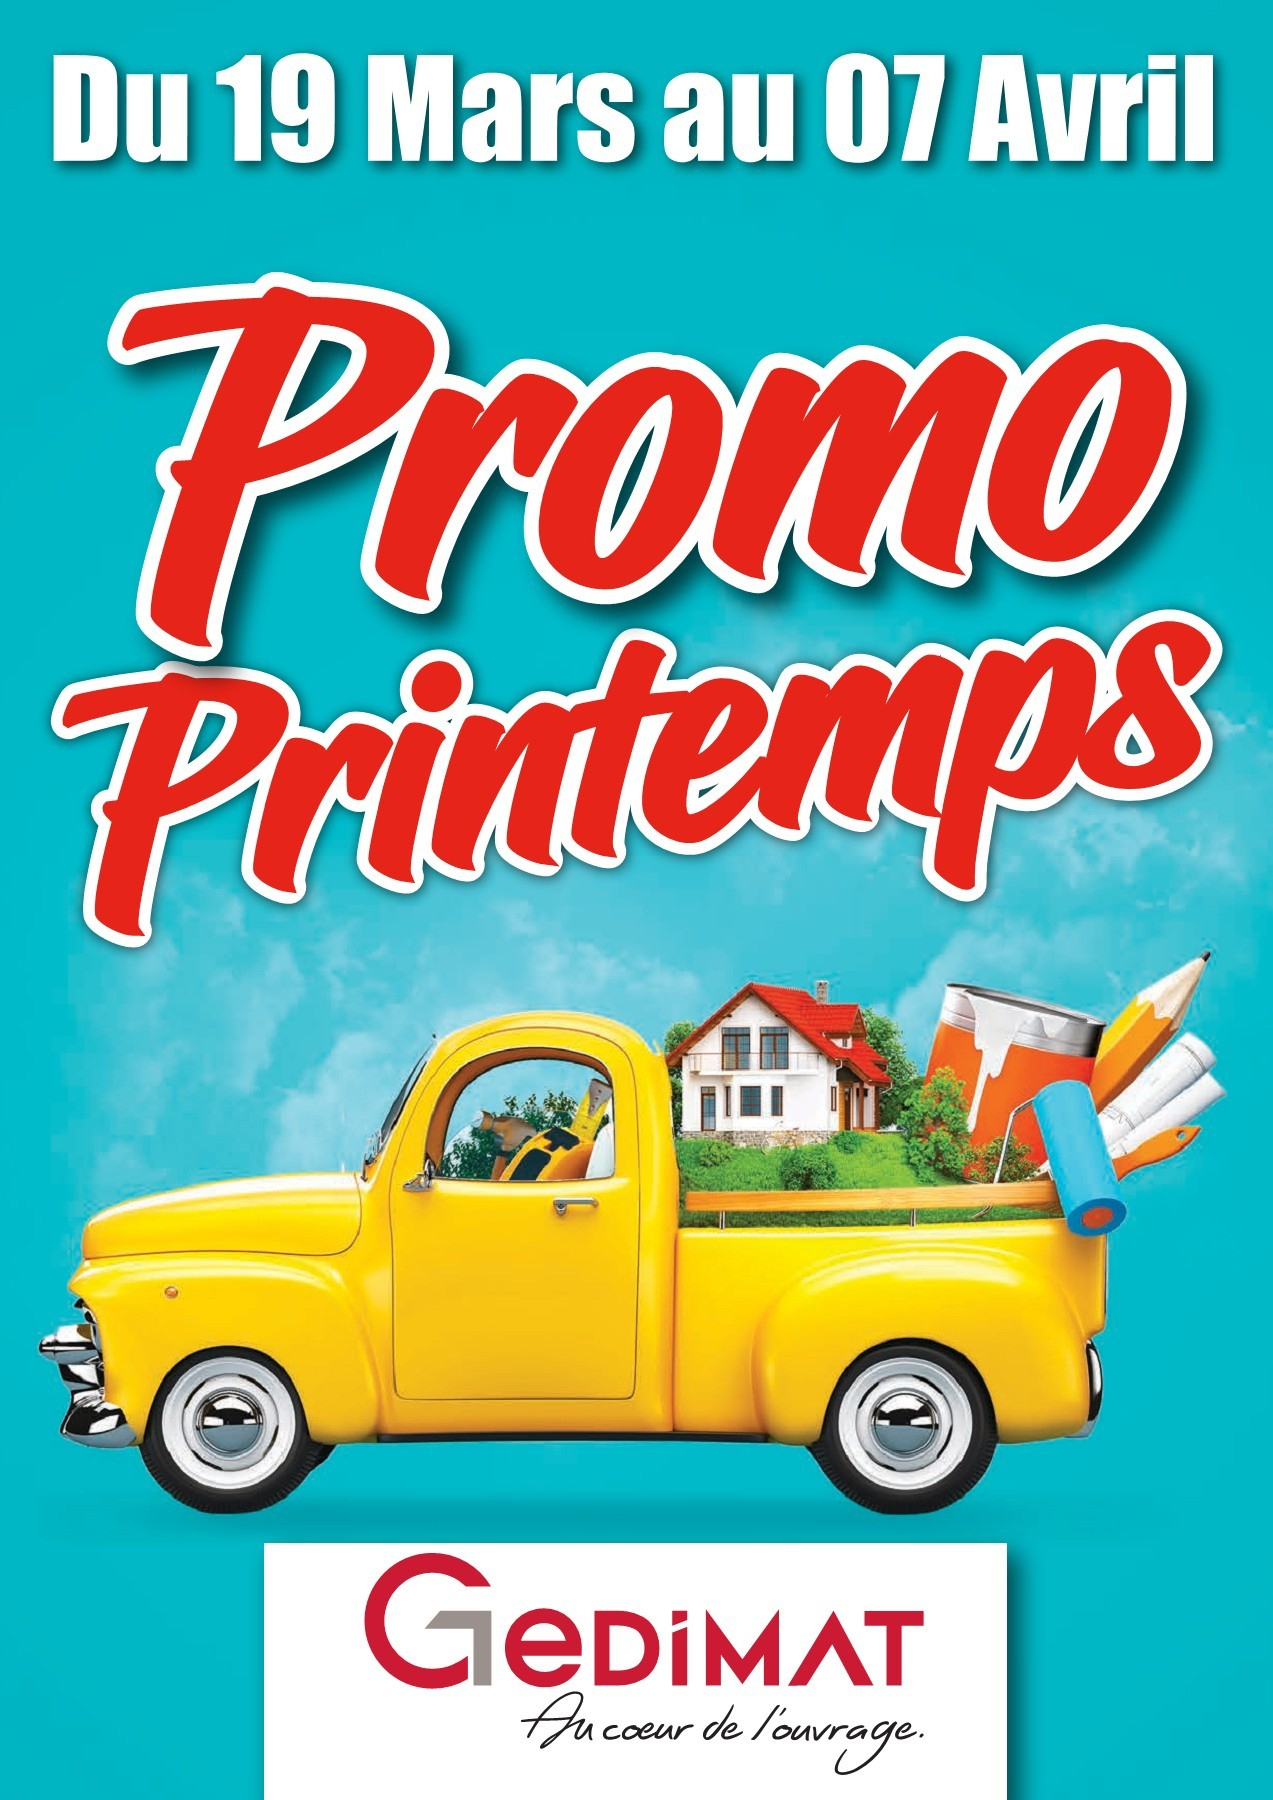 Gedimat Derrey Promo Printemps 2018 Pages 1 - 20 - Text ... à Bordure De Jardin Gedimat